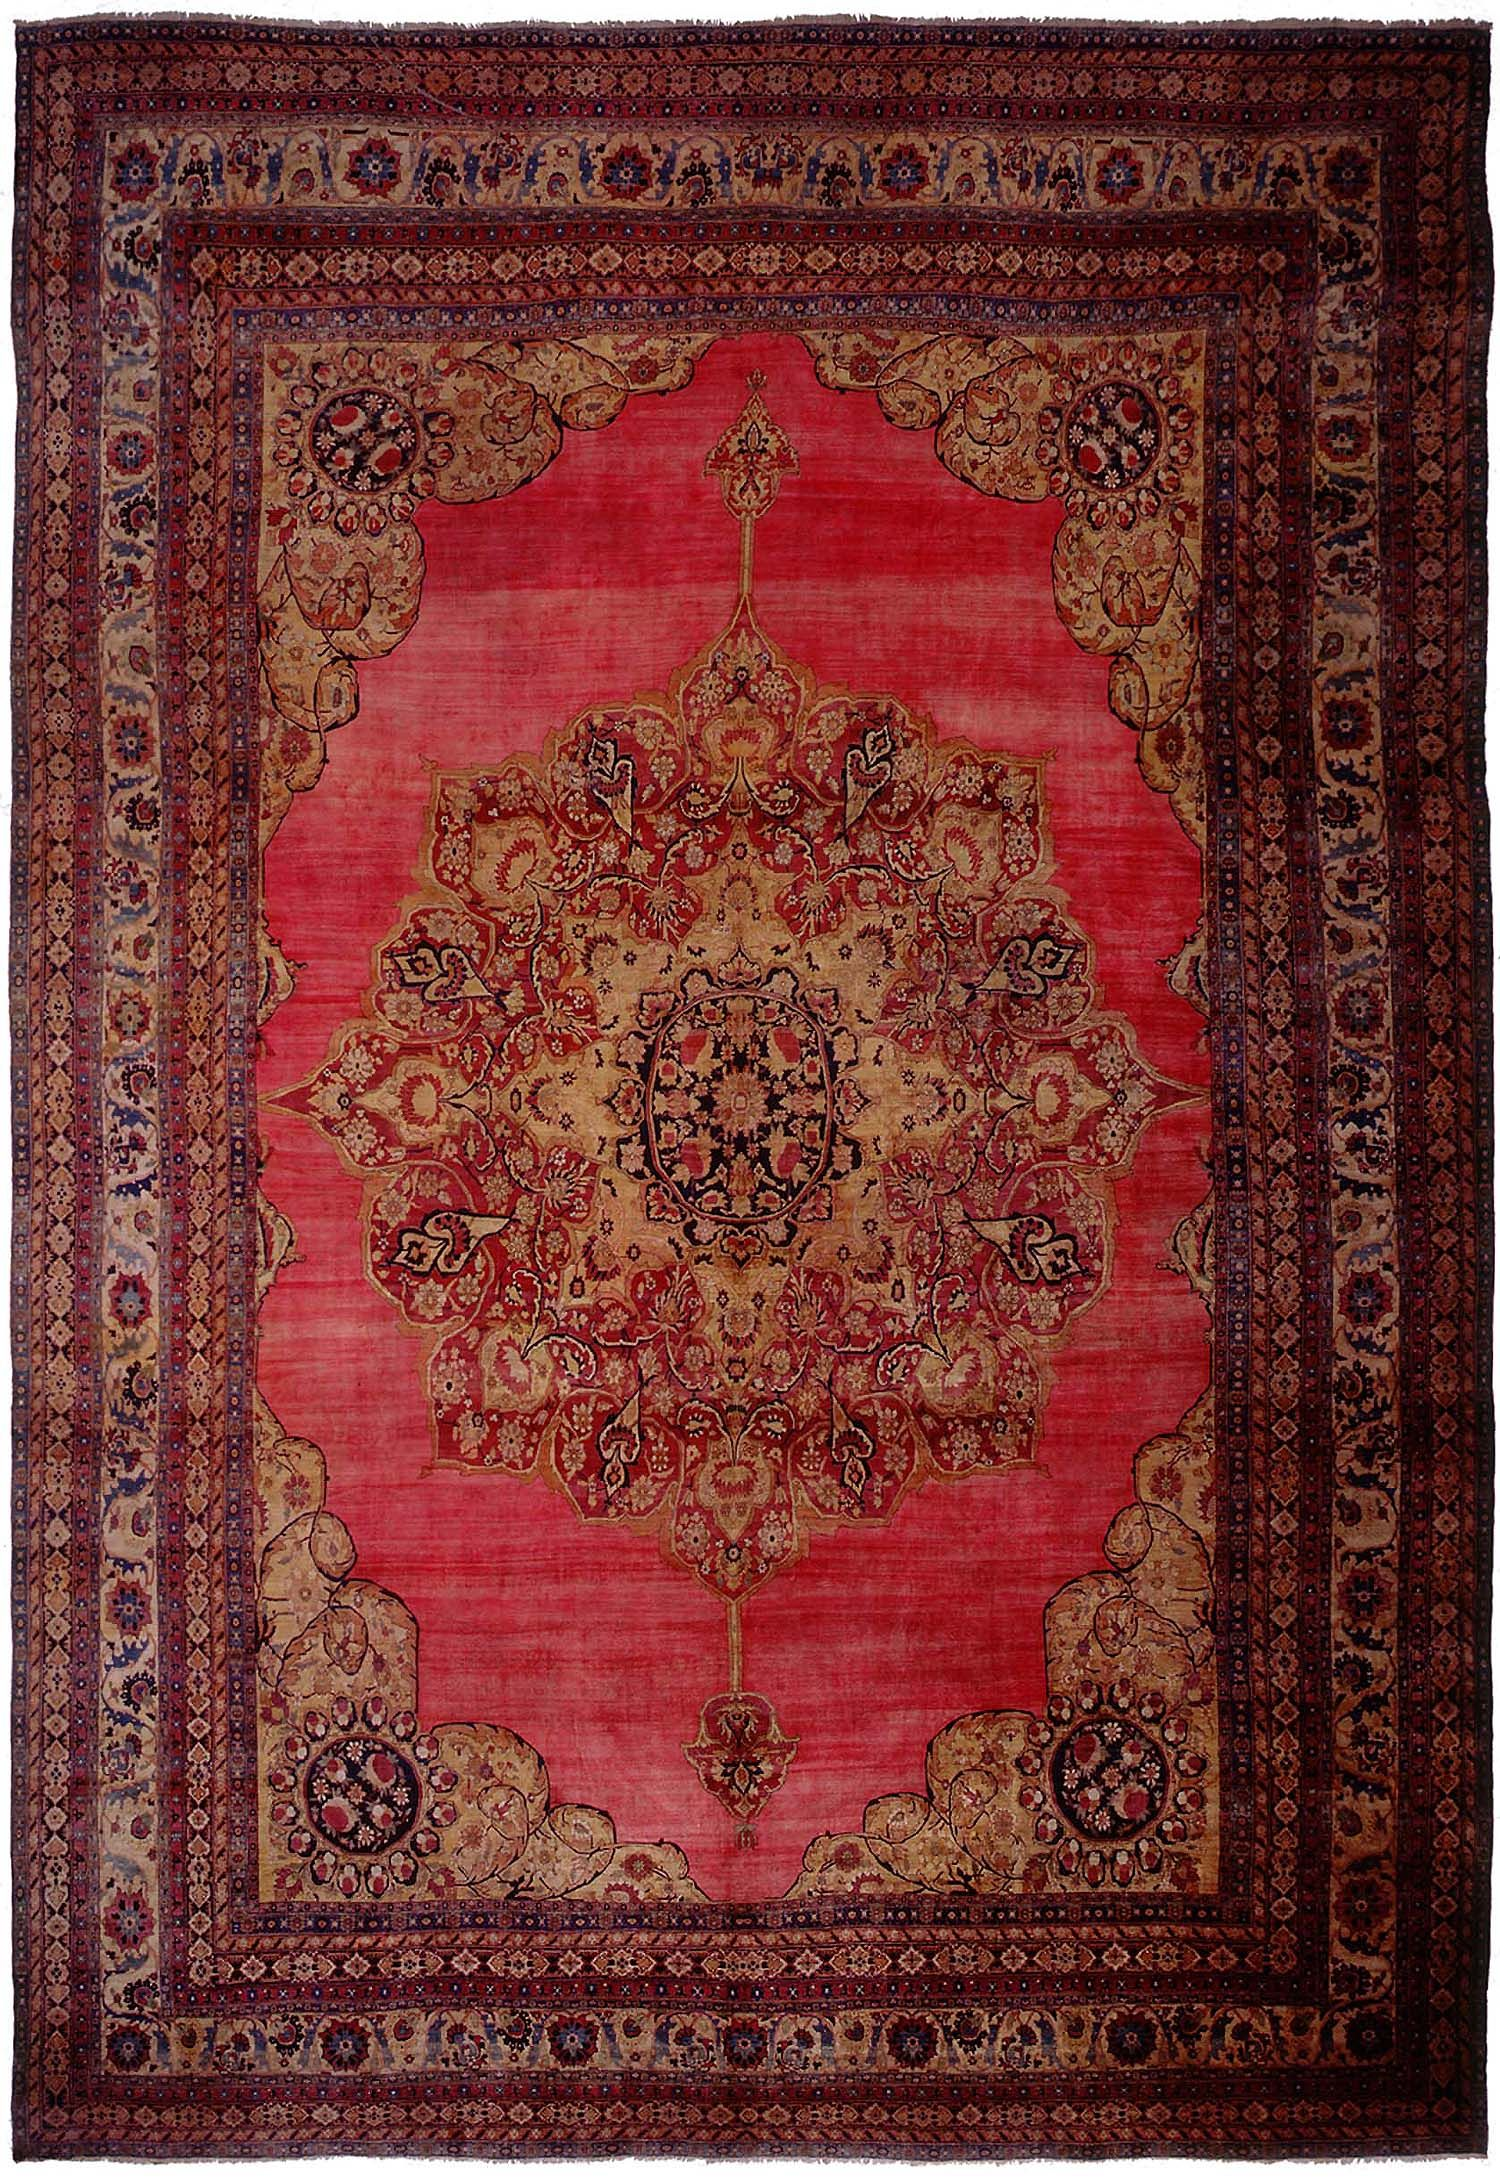 Antique Kerman Persian Rug 43607 Main Image By Nazmiyal Http Nazmiyalantiquerugs